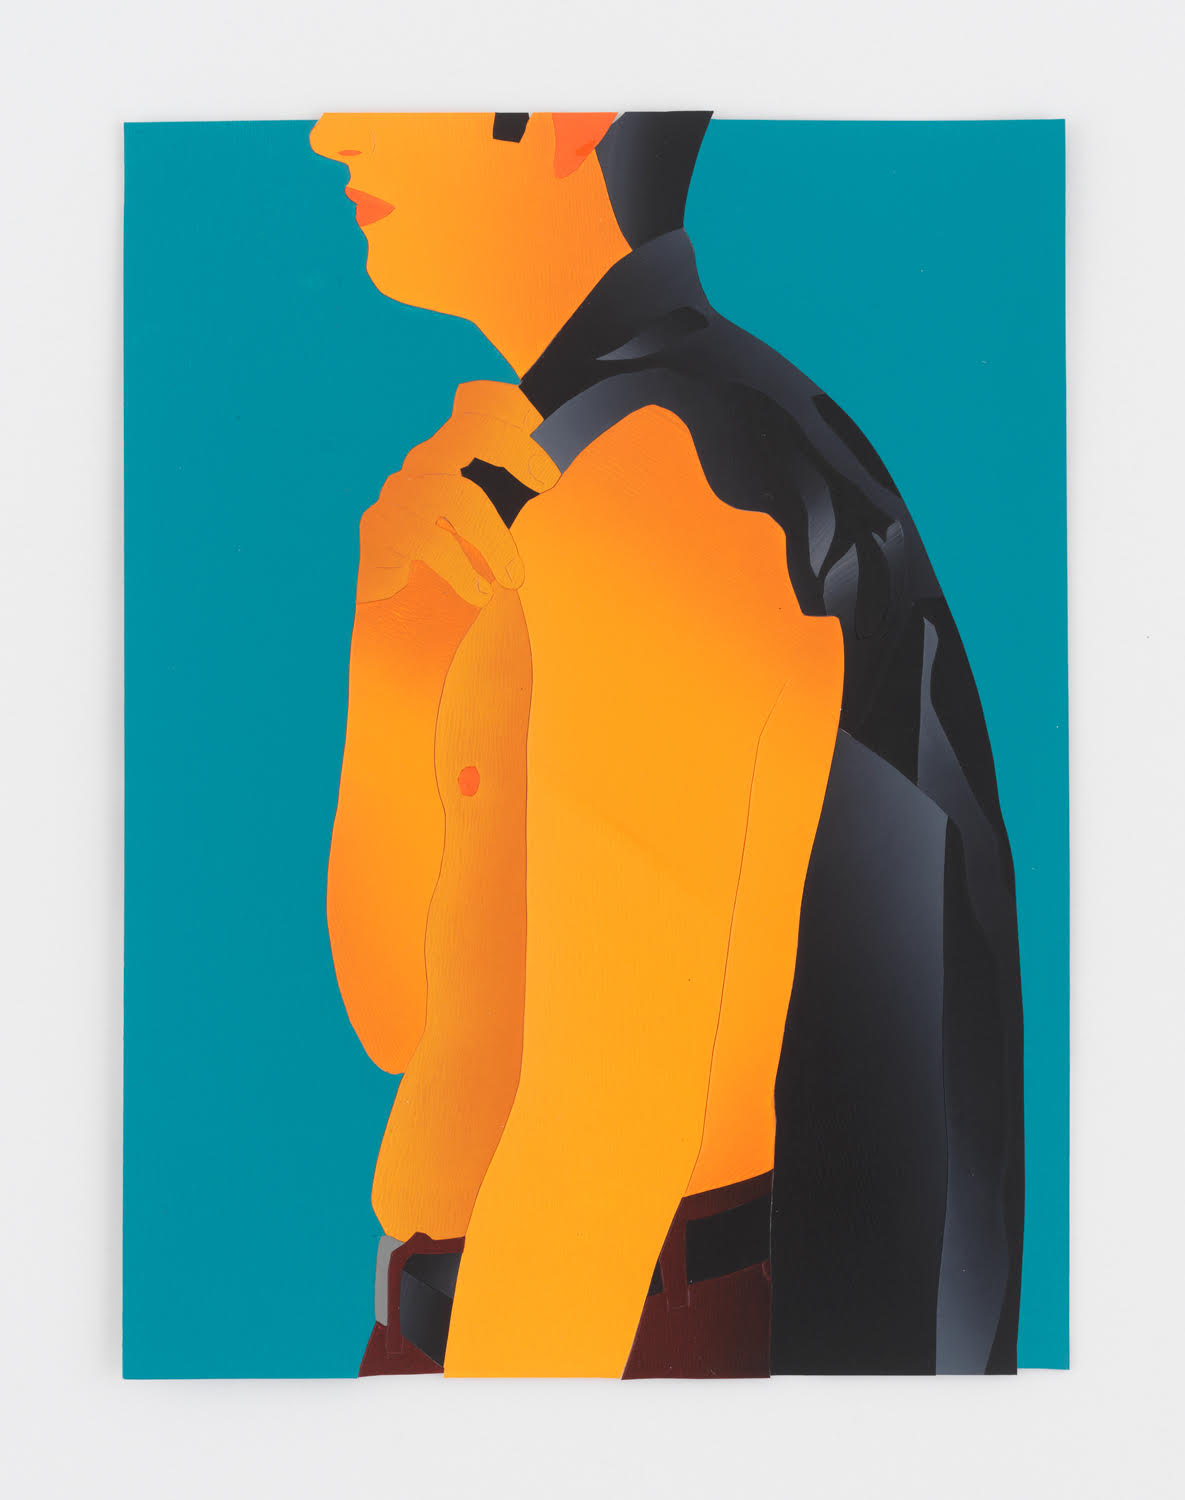 Anthony Iacono, Jacket, 2019, courtesy Marinaro Gallery